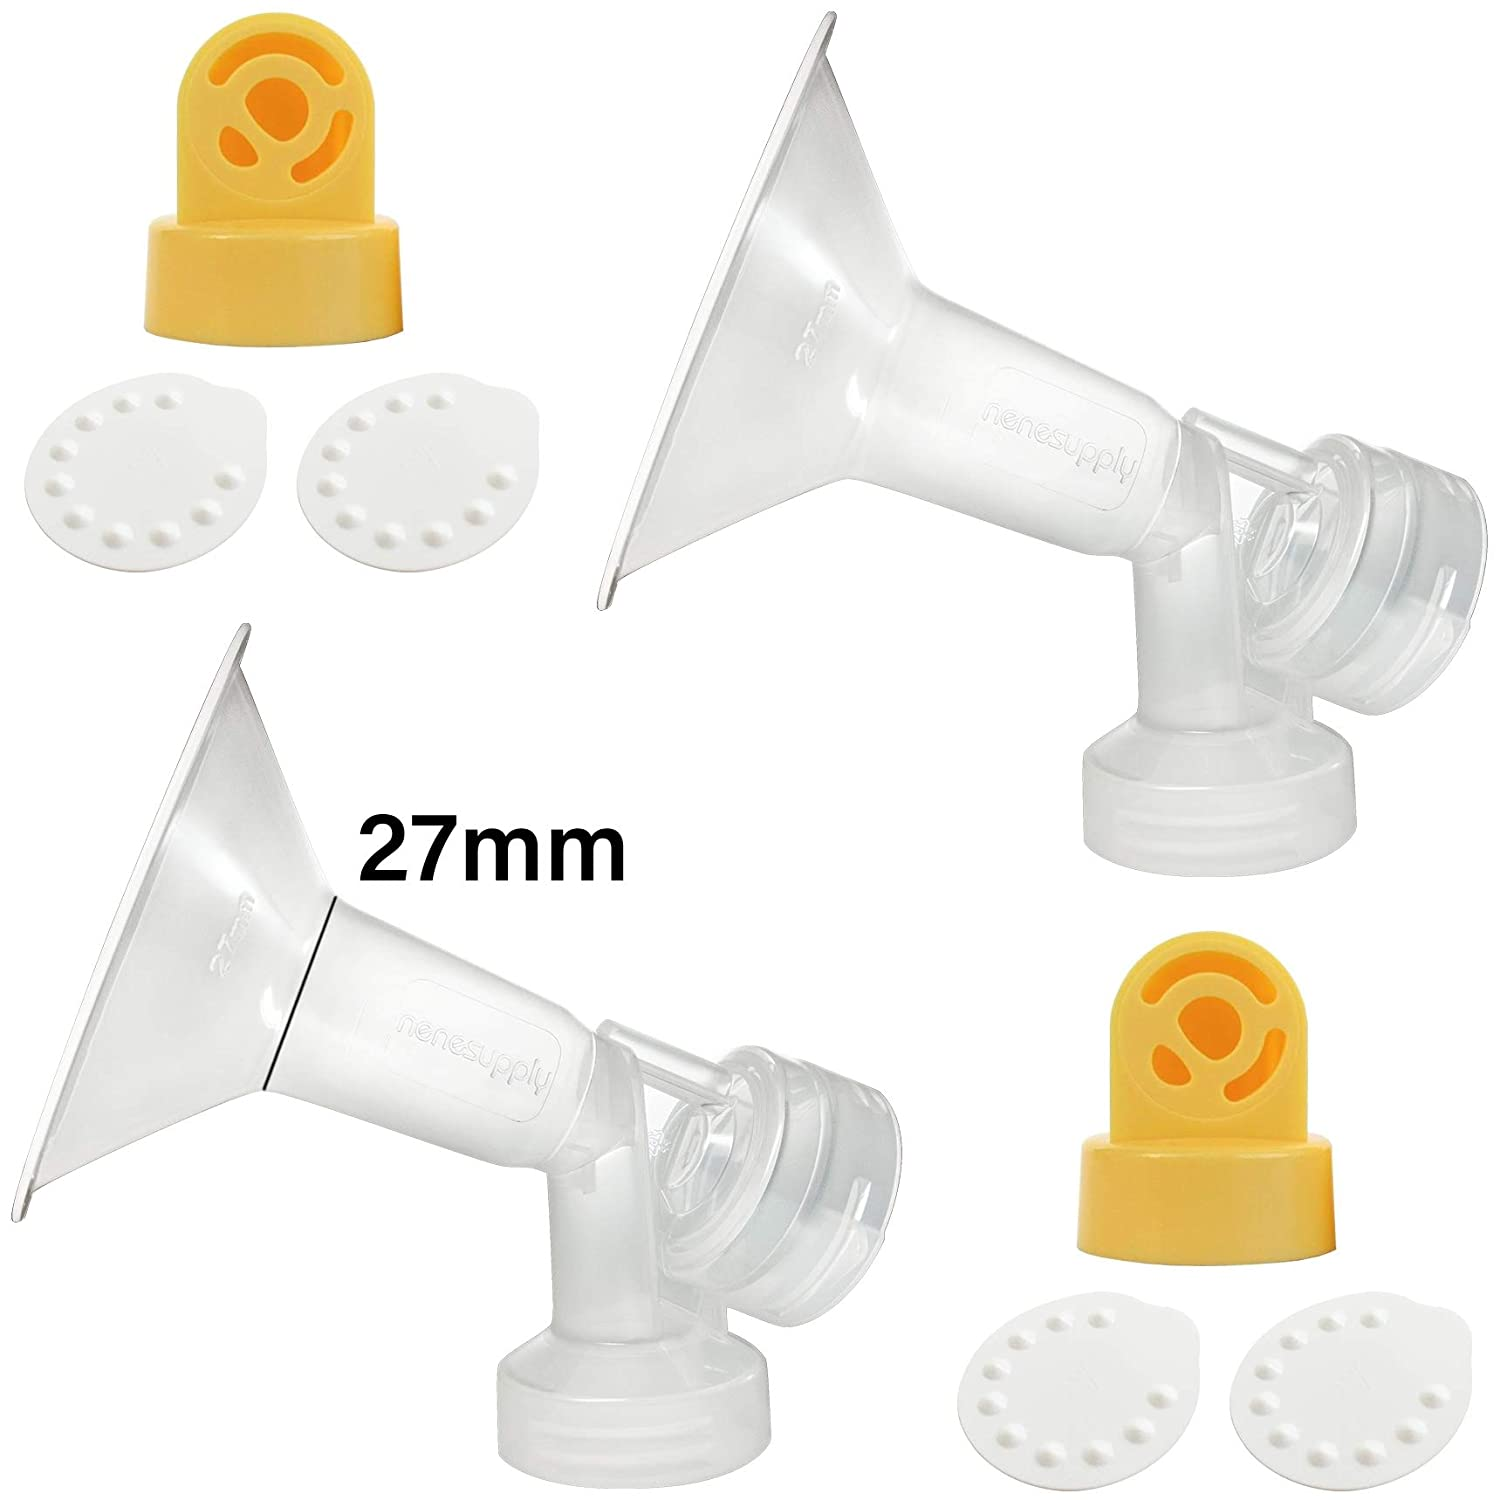 Nenesupply Pump Parts for Medela Breastpumps XX Small 19mm Breastshield Valve Membrane Use on Medela Pump In Style Symphony Medela Swing Not Original Medela Pump Parts Not Original Medela Breastshield